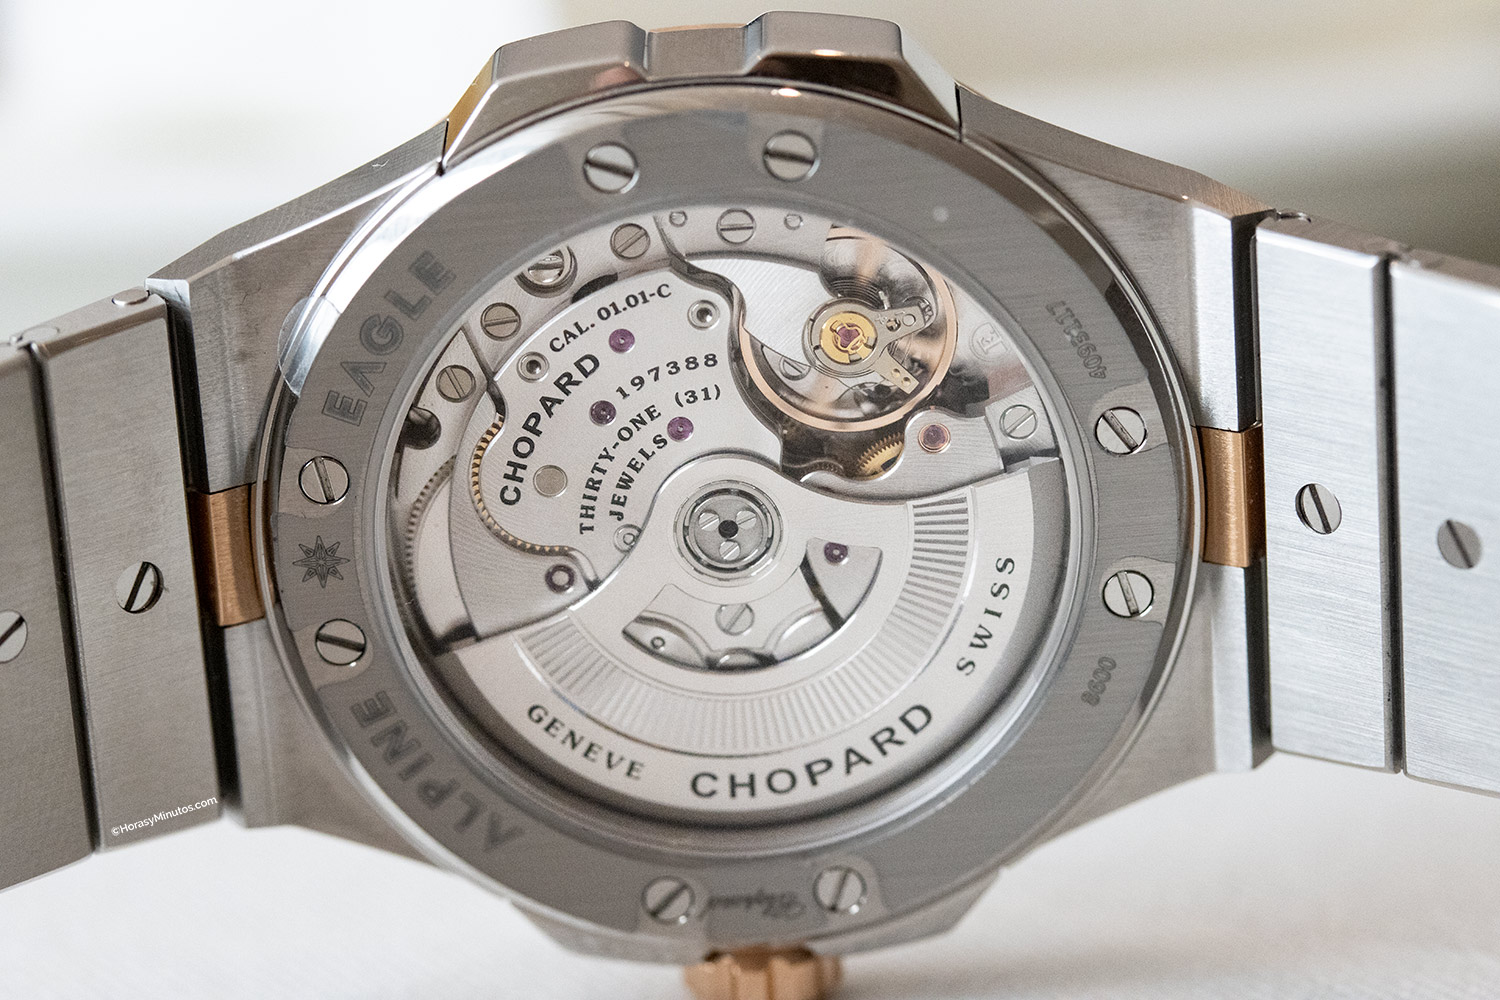 Calibre 01.01-C del Chopard Alpine Eagle